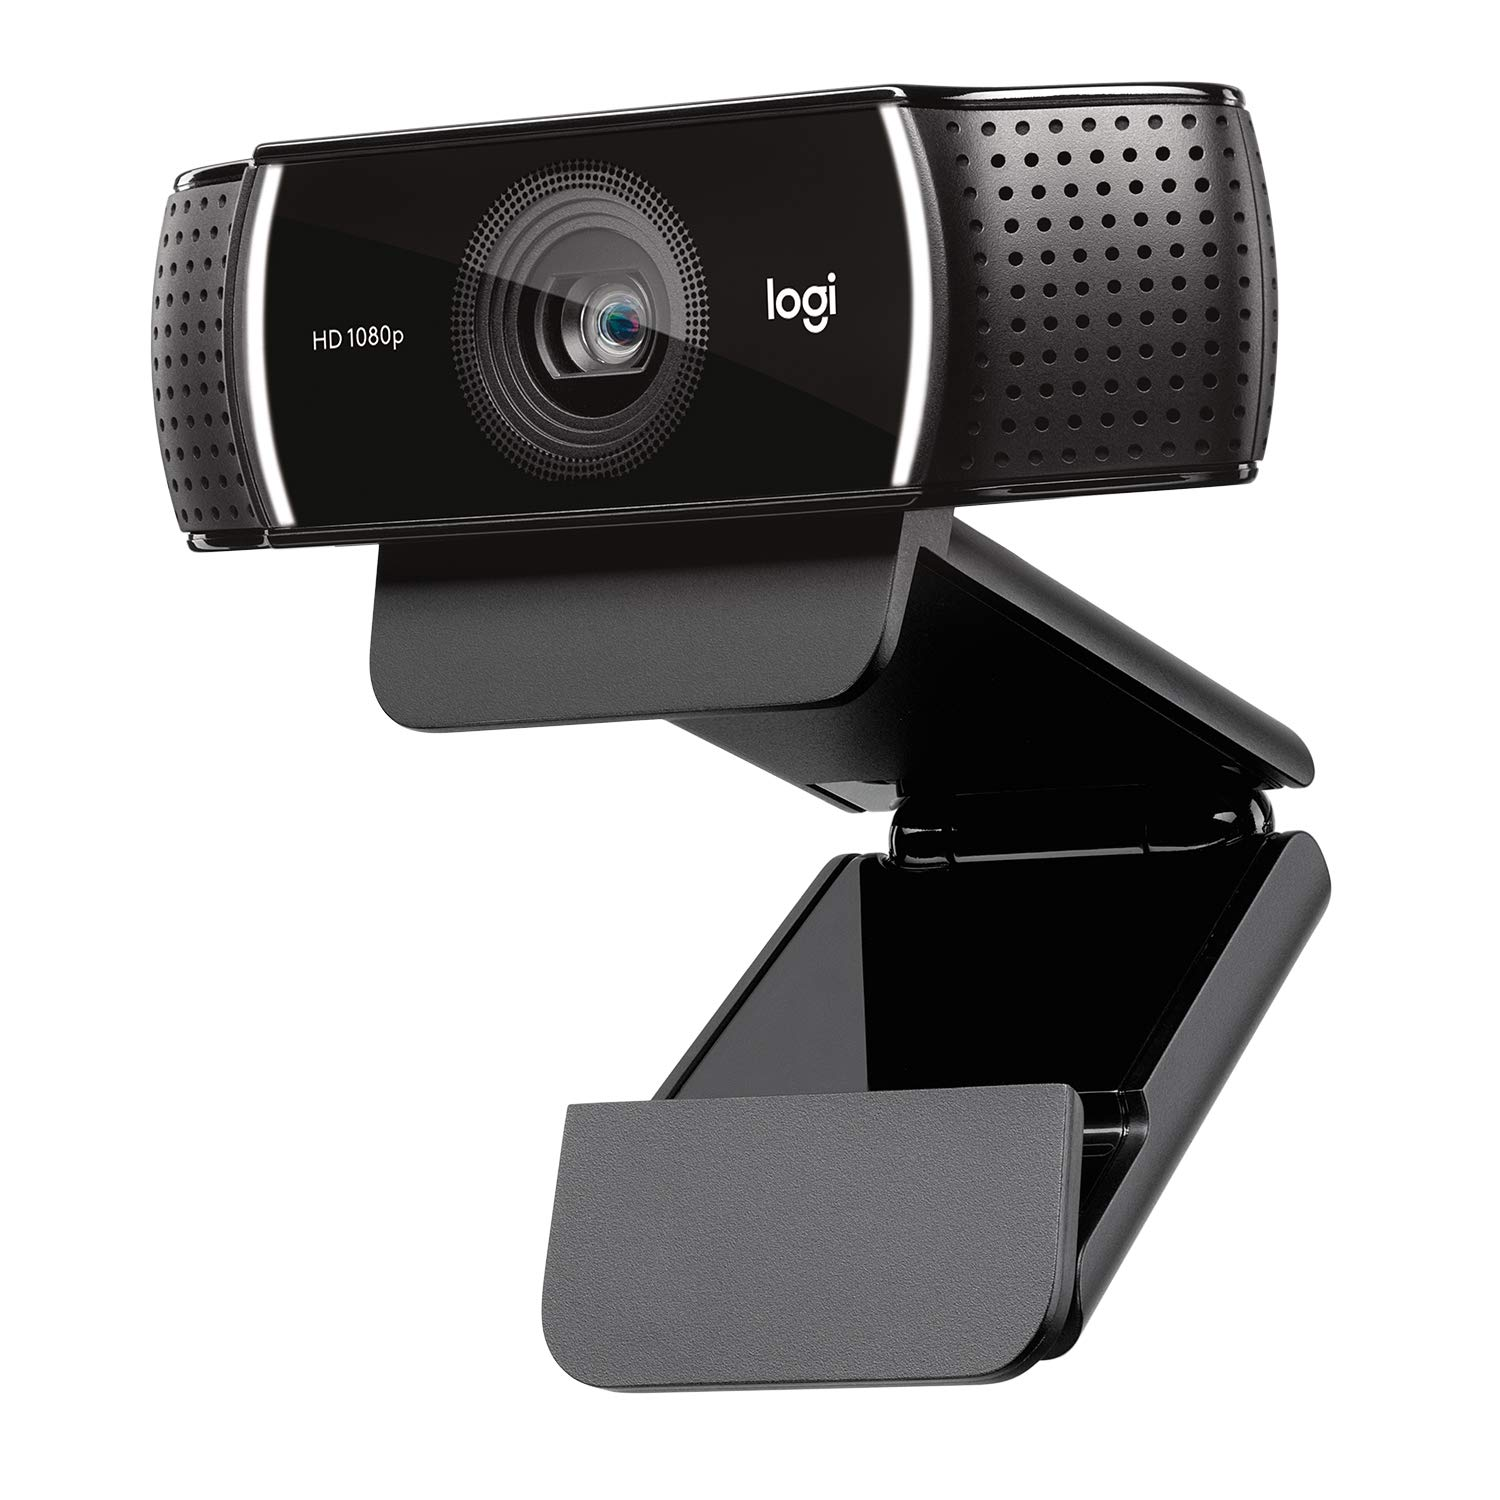 Logitech C922x Pro Stream Webcam – Full 1080p HD Camera – Background Replacement Technology for YouTube or Twitch Streaming by Logitech (Image #3)